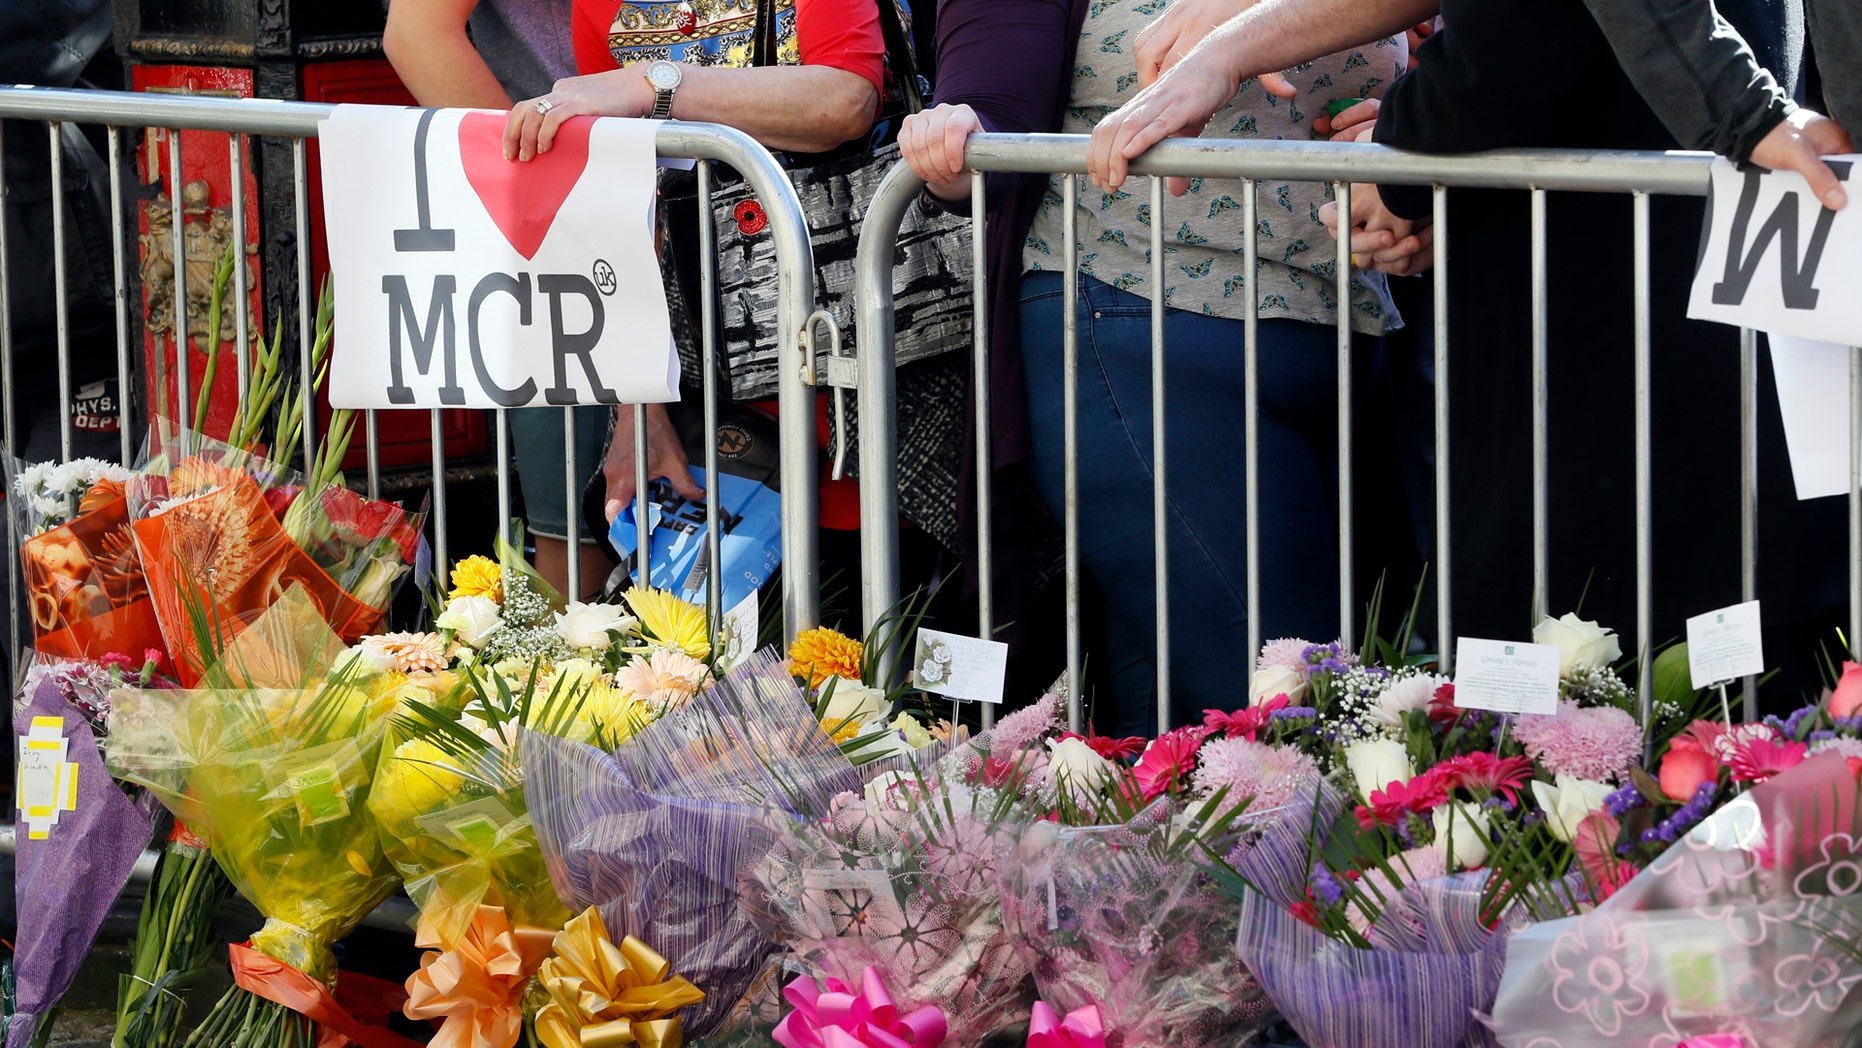 Flowers seen in Manchester after a bombing at an Ariana Grande concert took the lives of 22 people and injured 119 others.